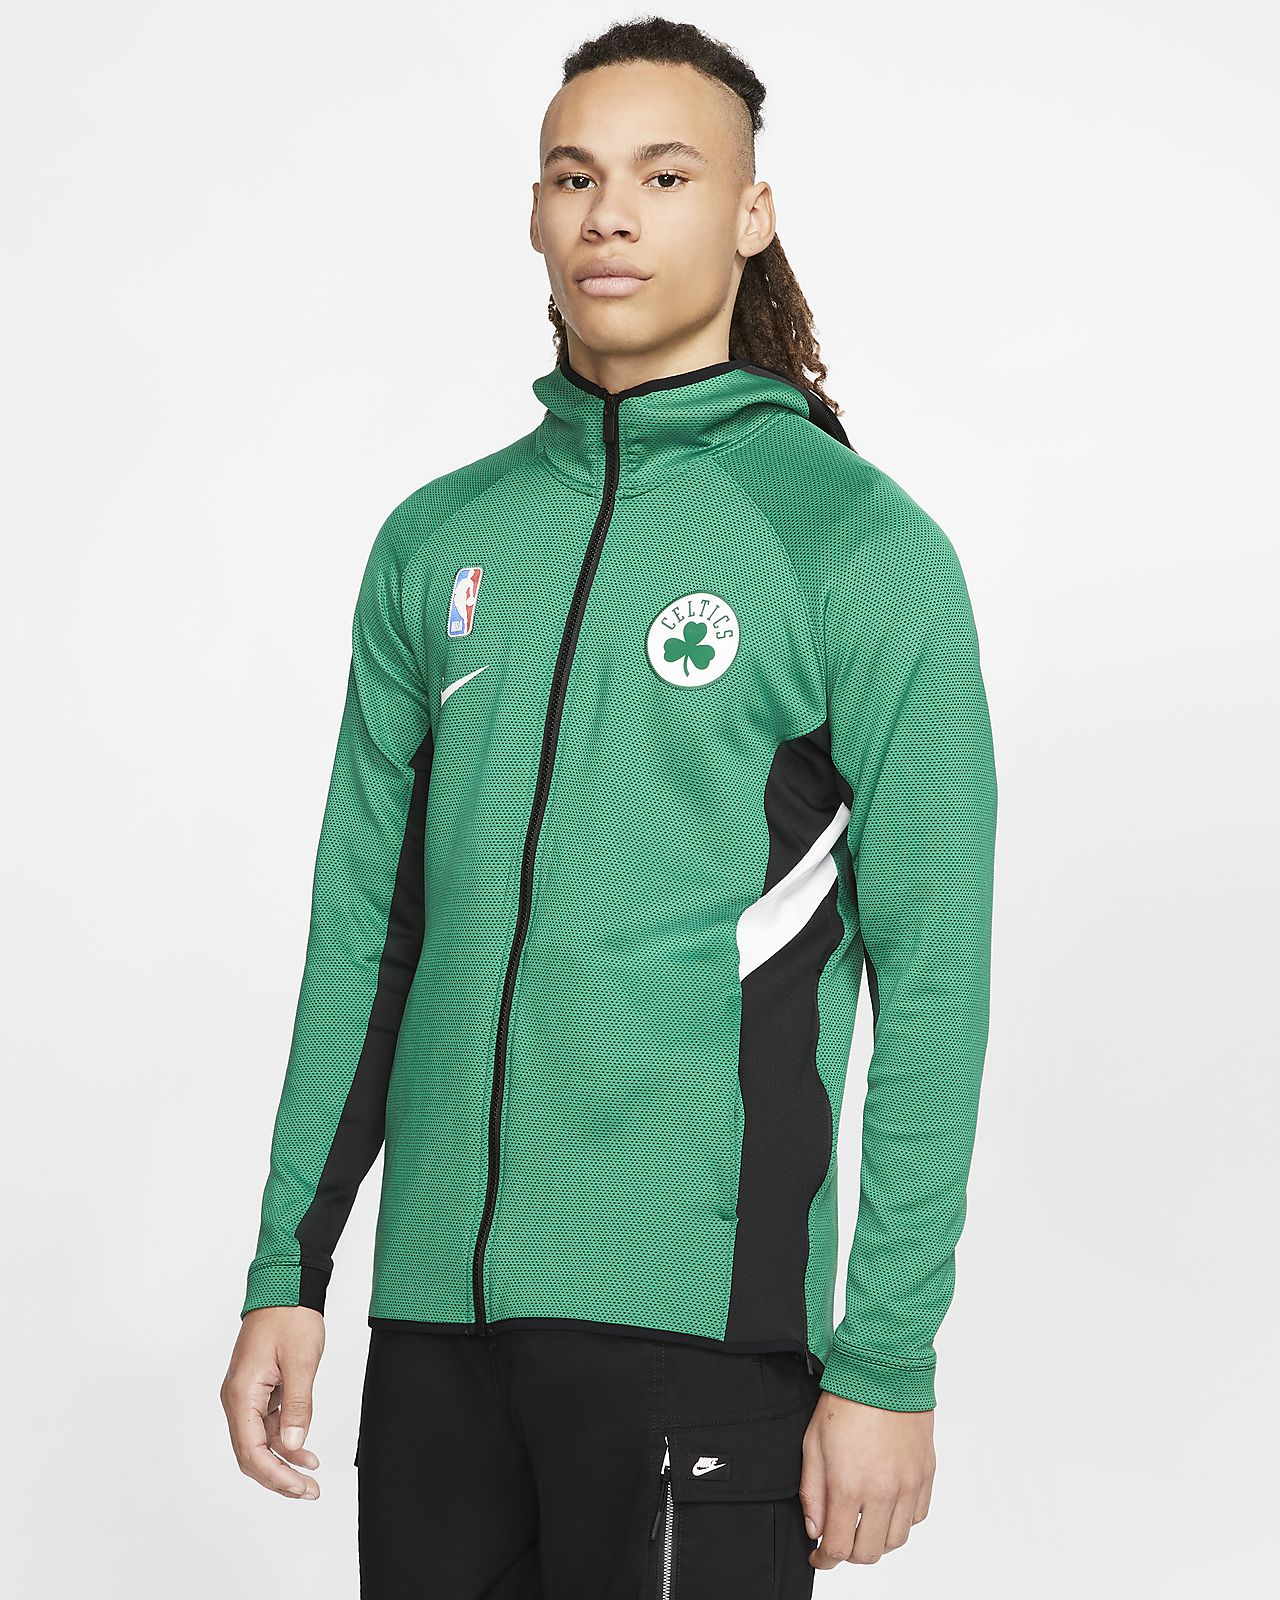 Boston Celtics Nike Therma Flex Showtime Men's NBA Hoodie